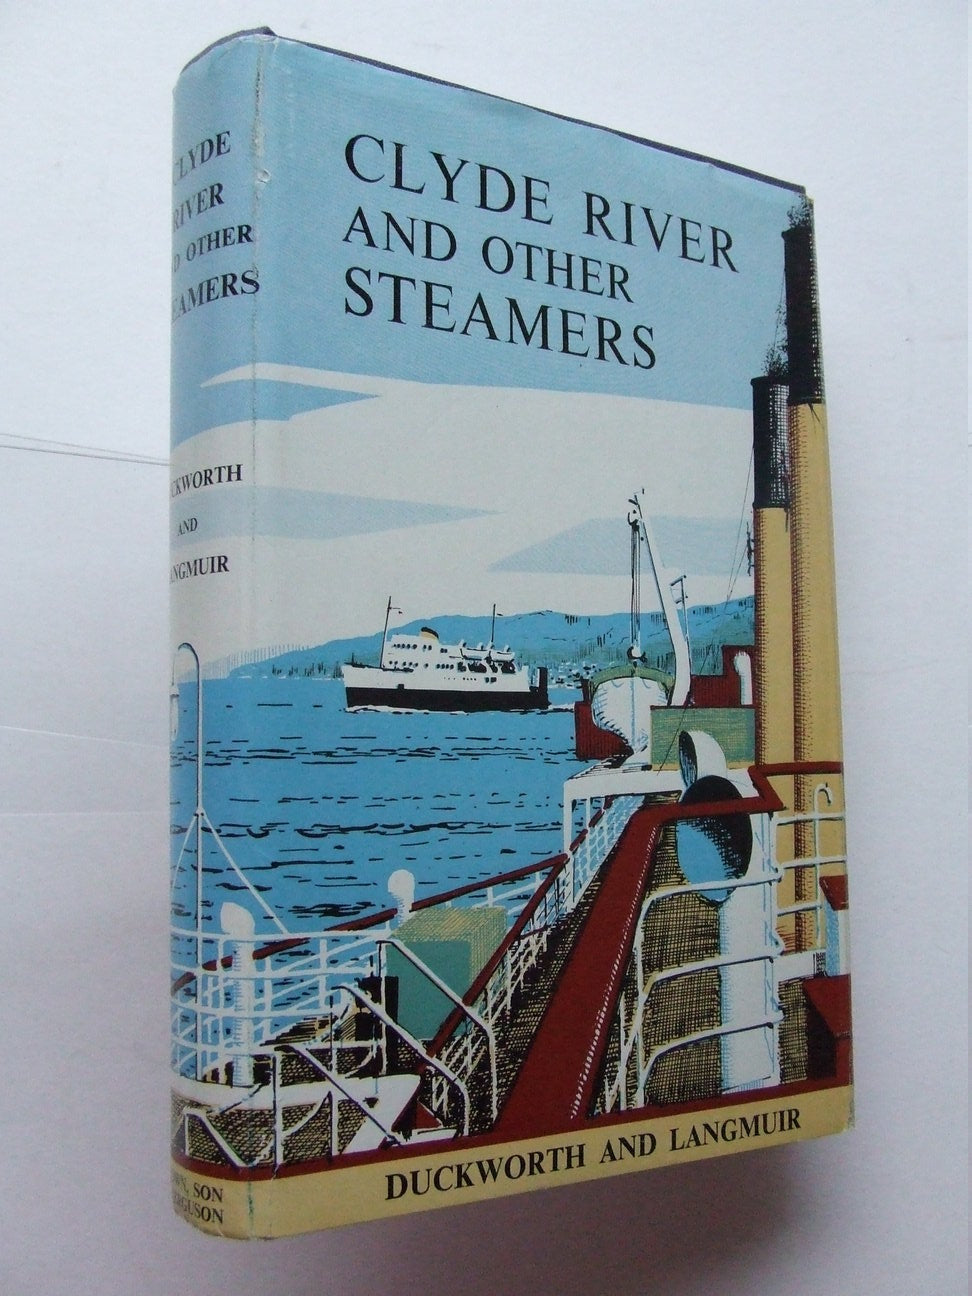 Clyde River and Other Steamers. 3rd edition